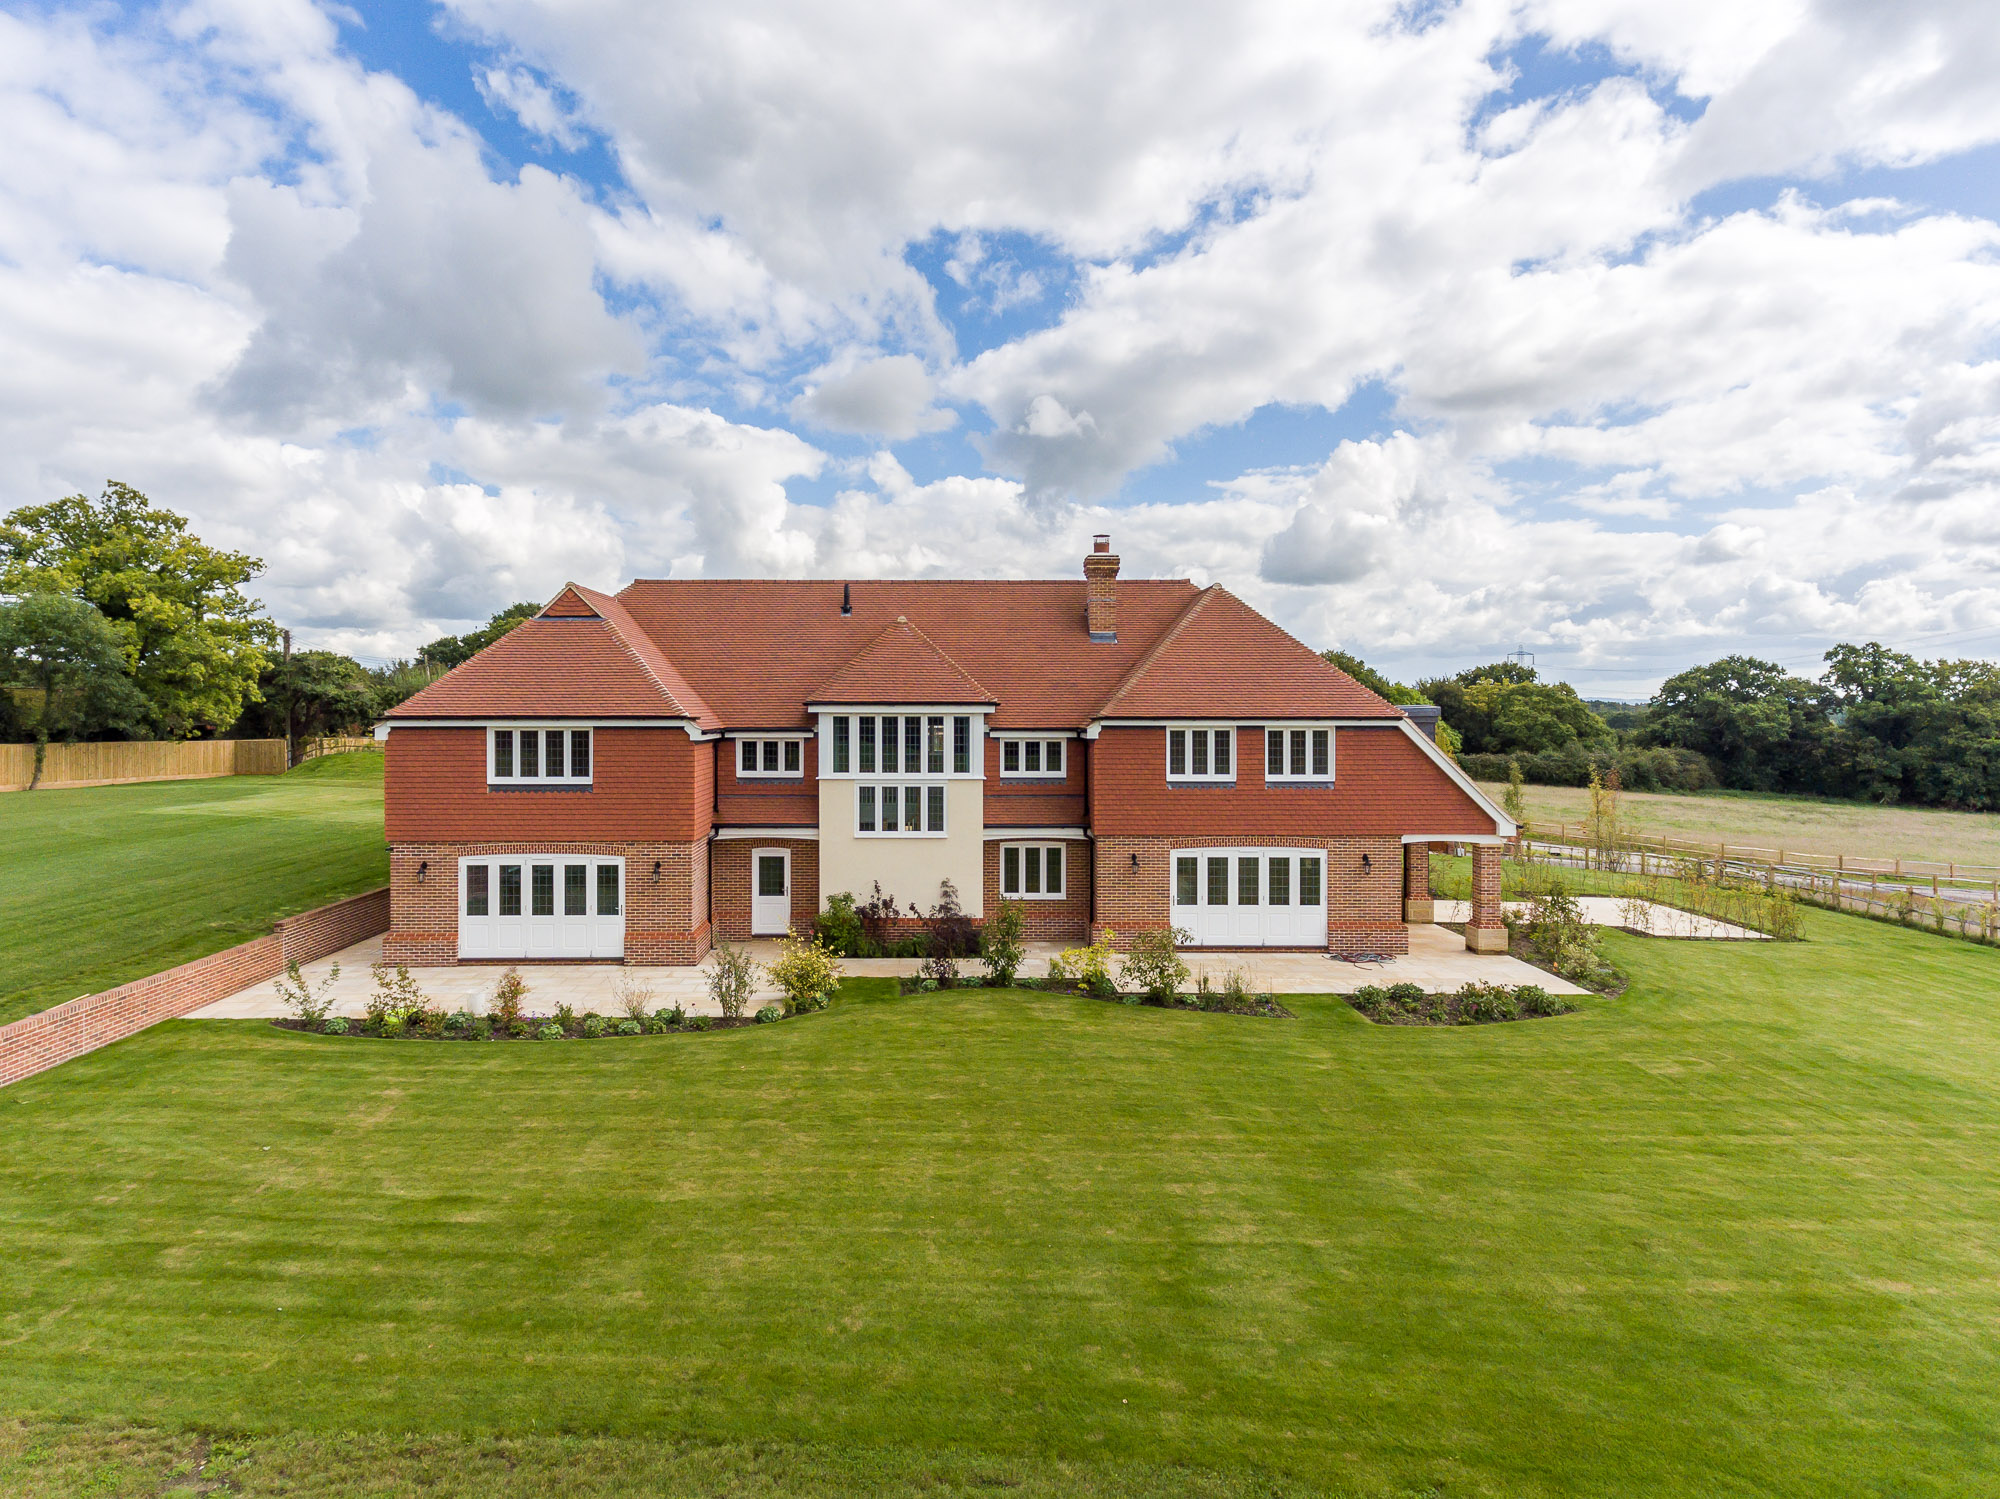 jonathan bond photography, aerial drone view of back of detached residential house